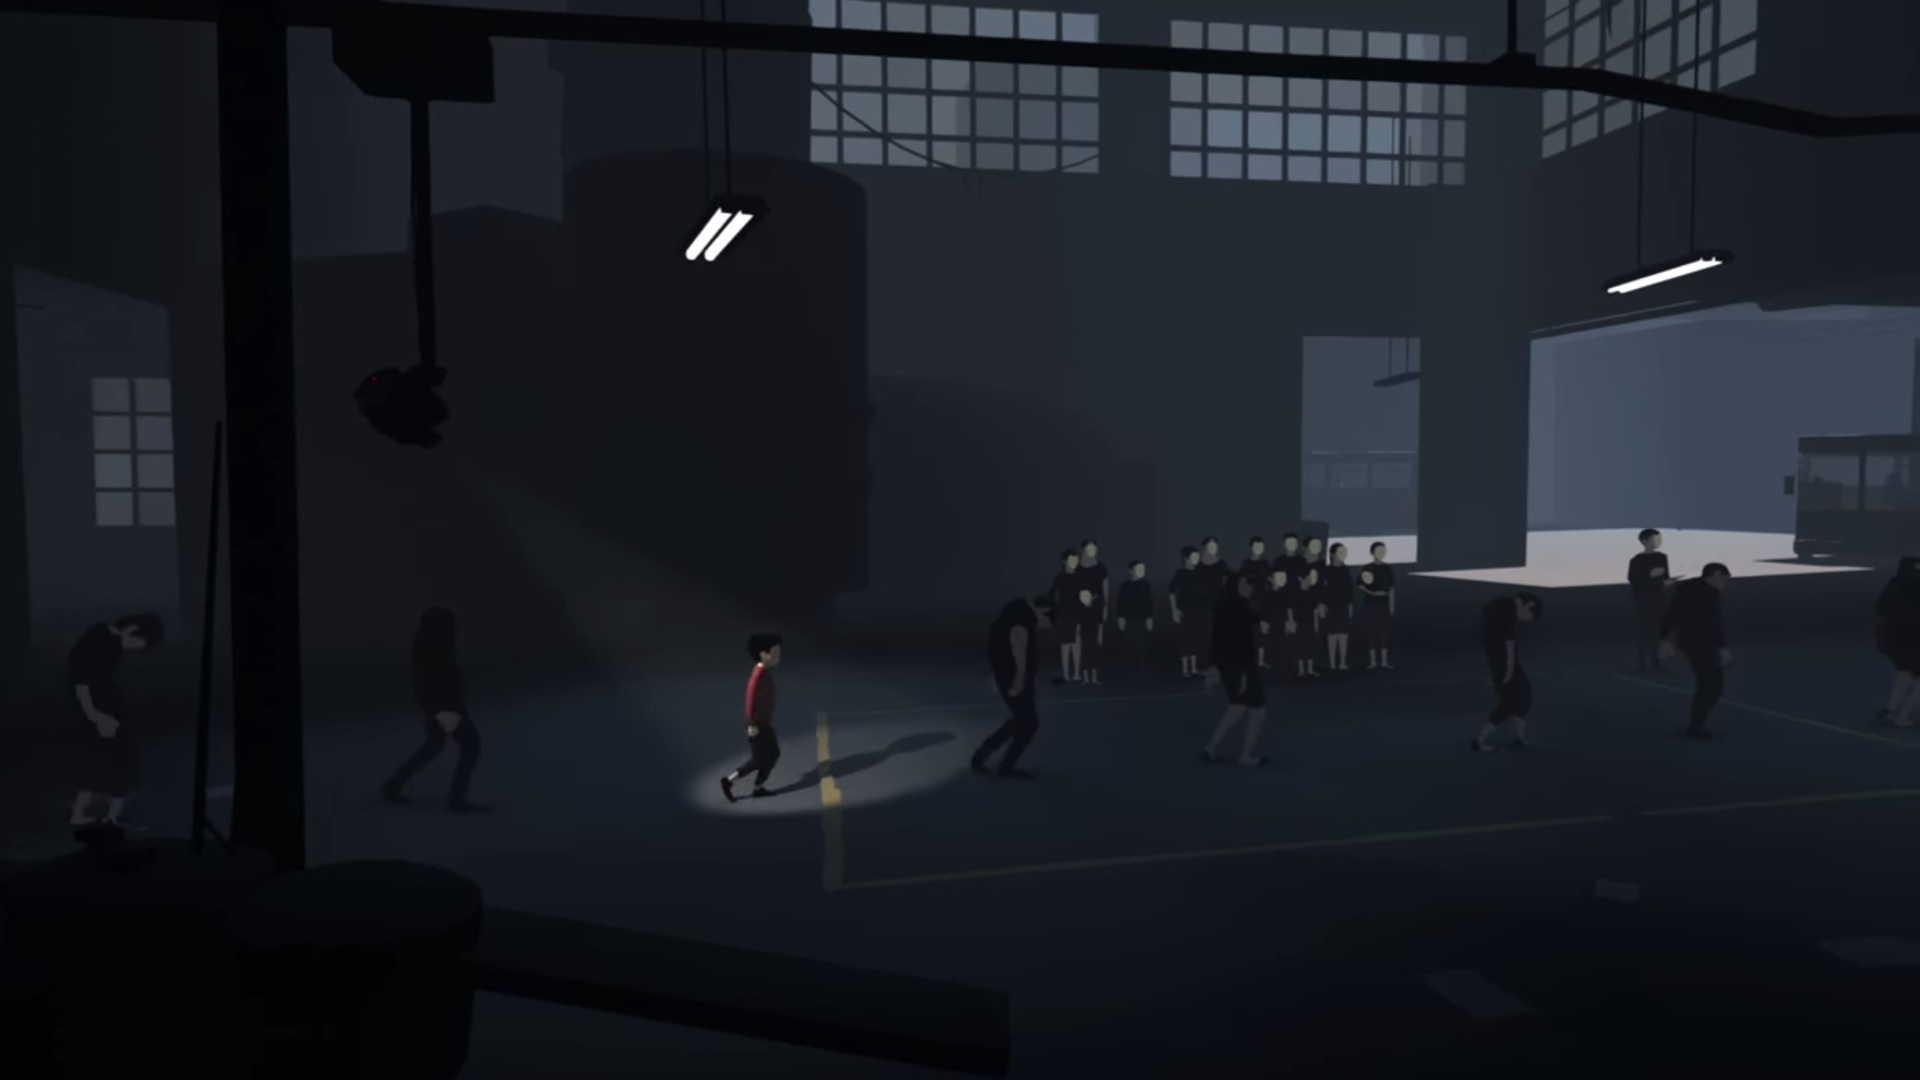 Playdead's Inside delayed